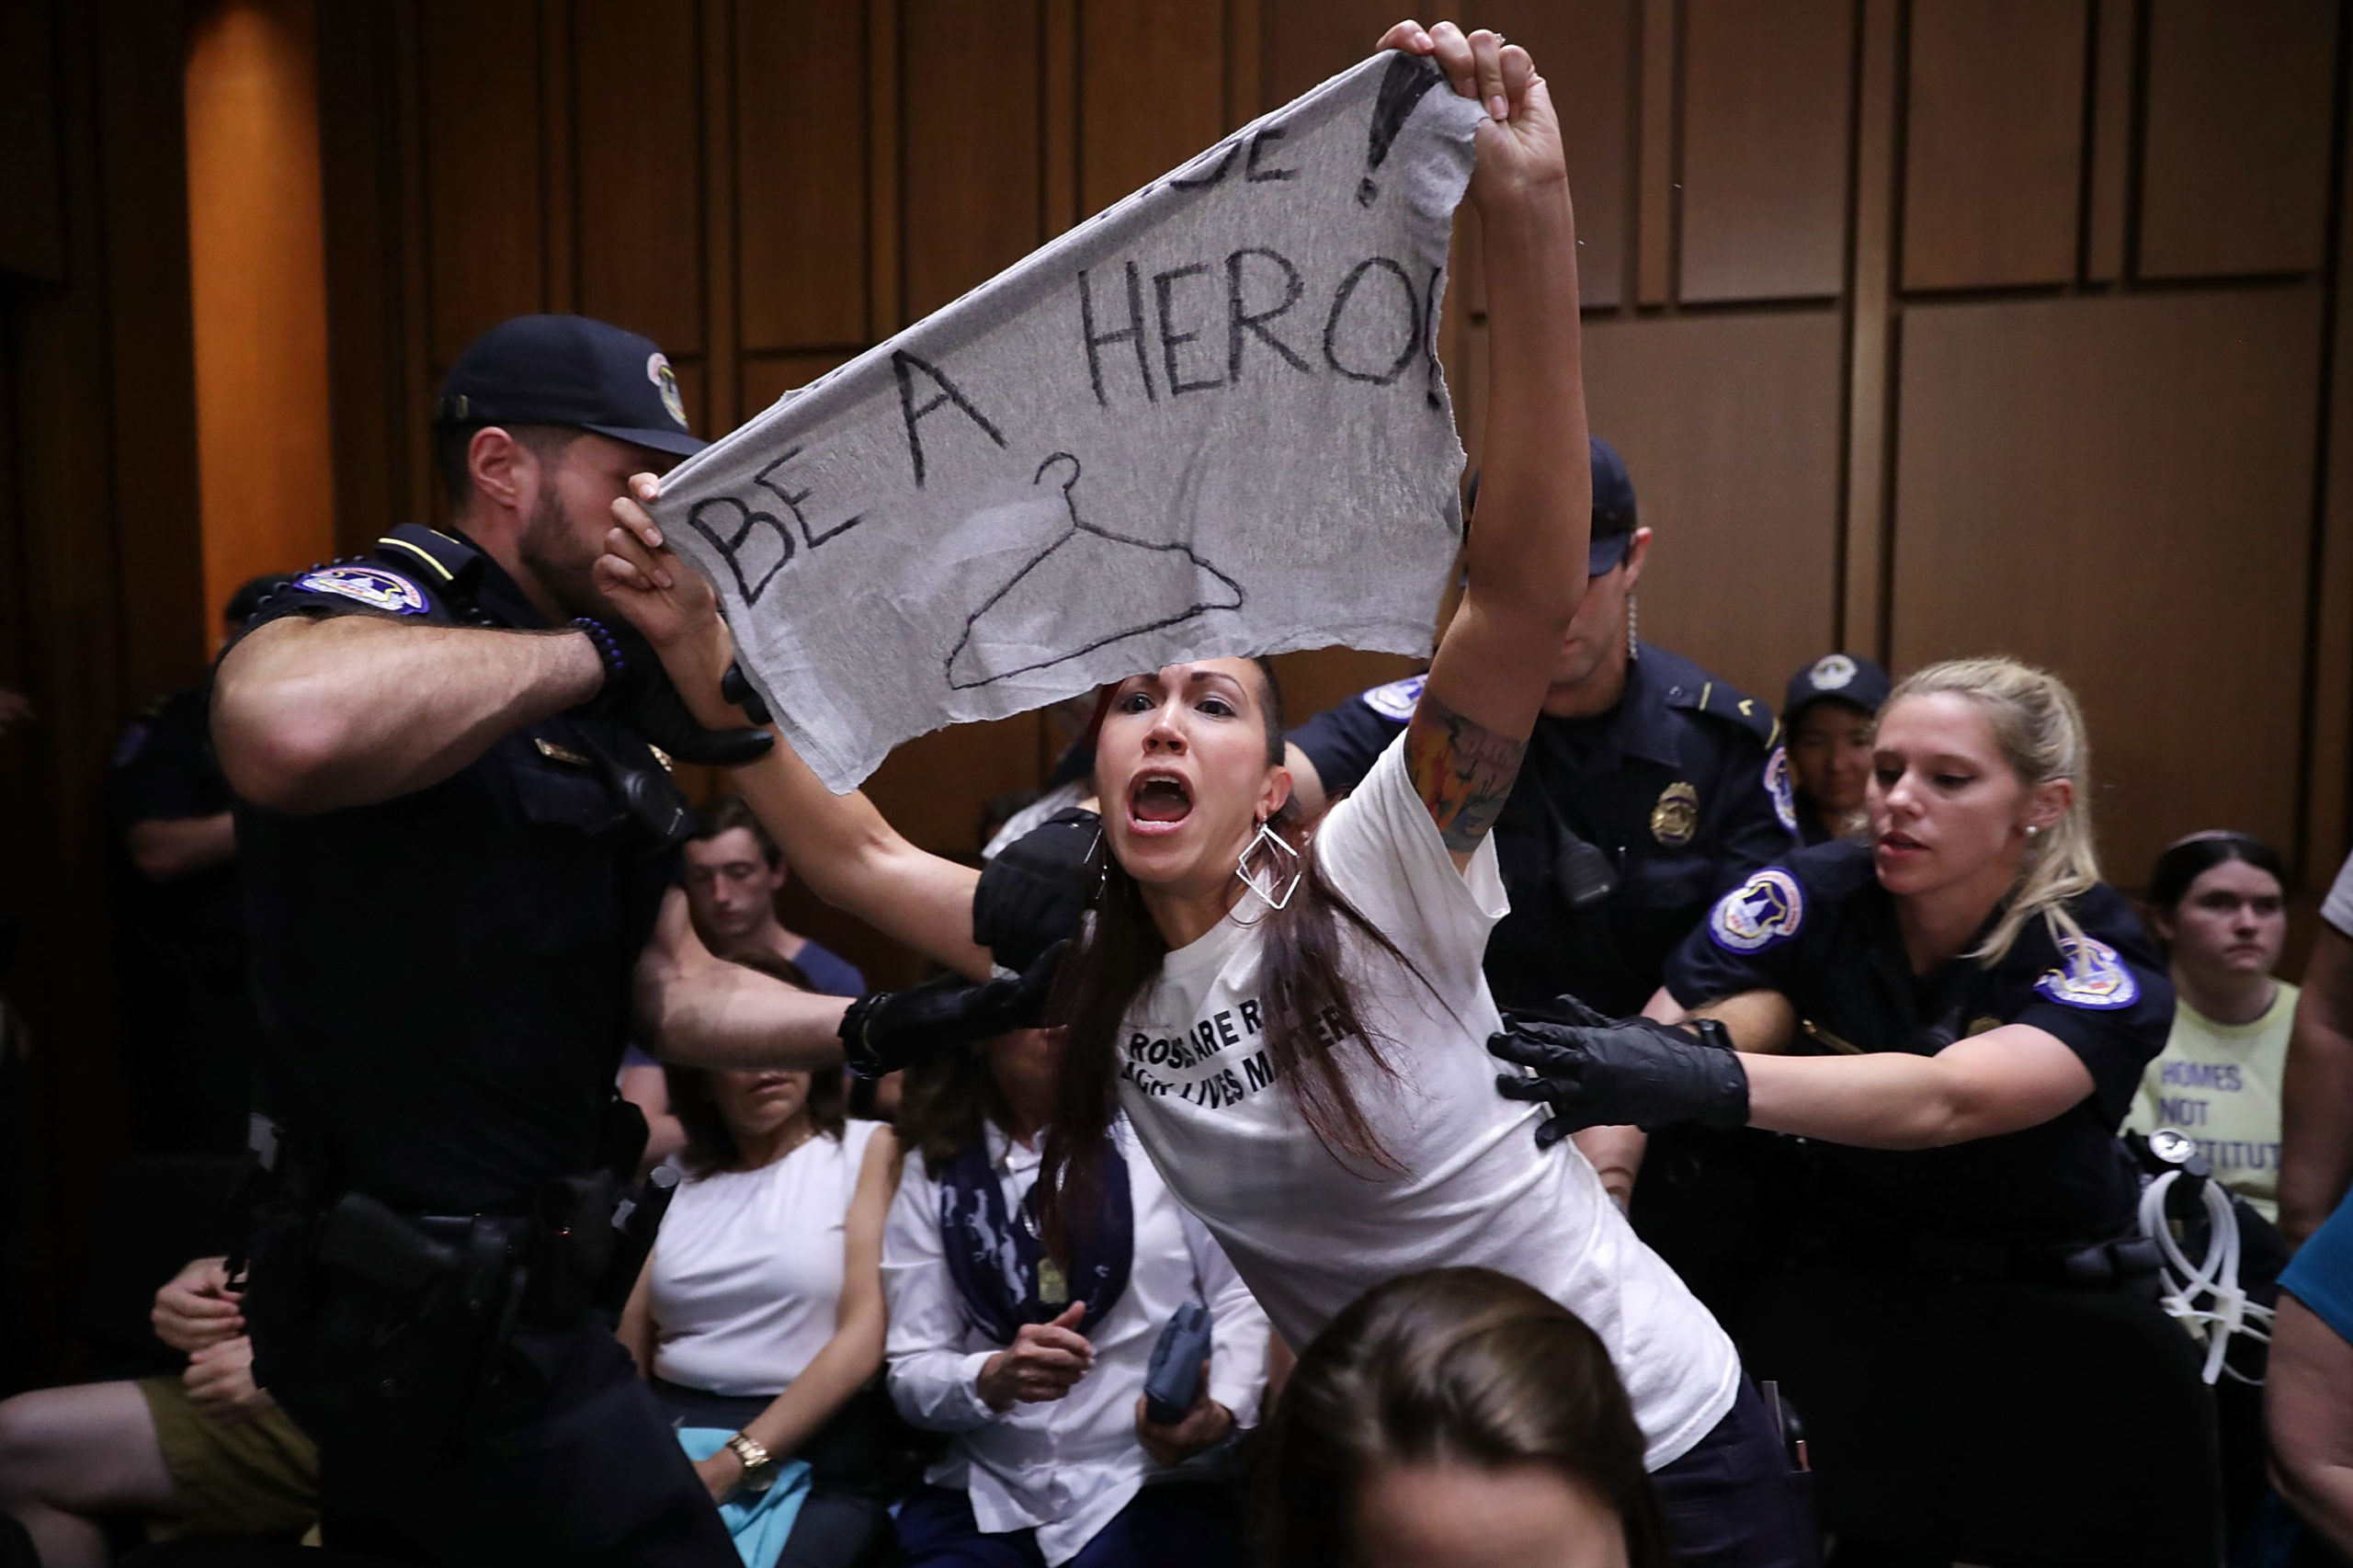 WASHINGTON, DC - SEPTEMBER 05: U.S. Capitol Police remove a protester from the hearing room during the second day of Supreme Court nominee Judge Brett Kavanaugh's confirmation hearing before the Senate Judiciary Committee on Capitol Hill September 5, 2018 in Washington, DC. (Photo by Chip Somodevilla/Getty Images)